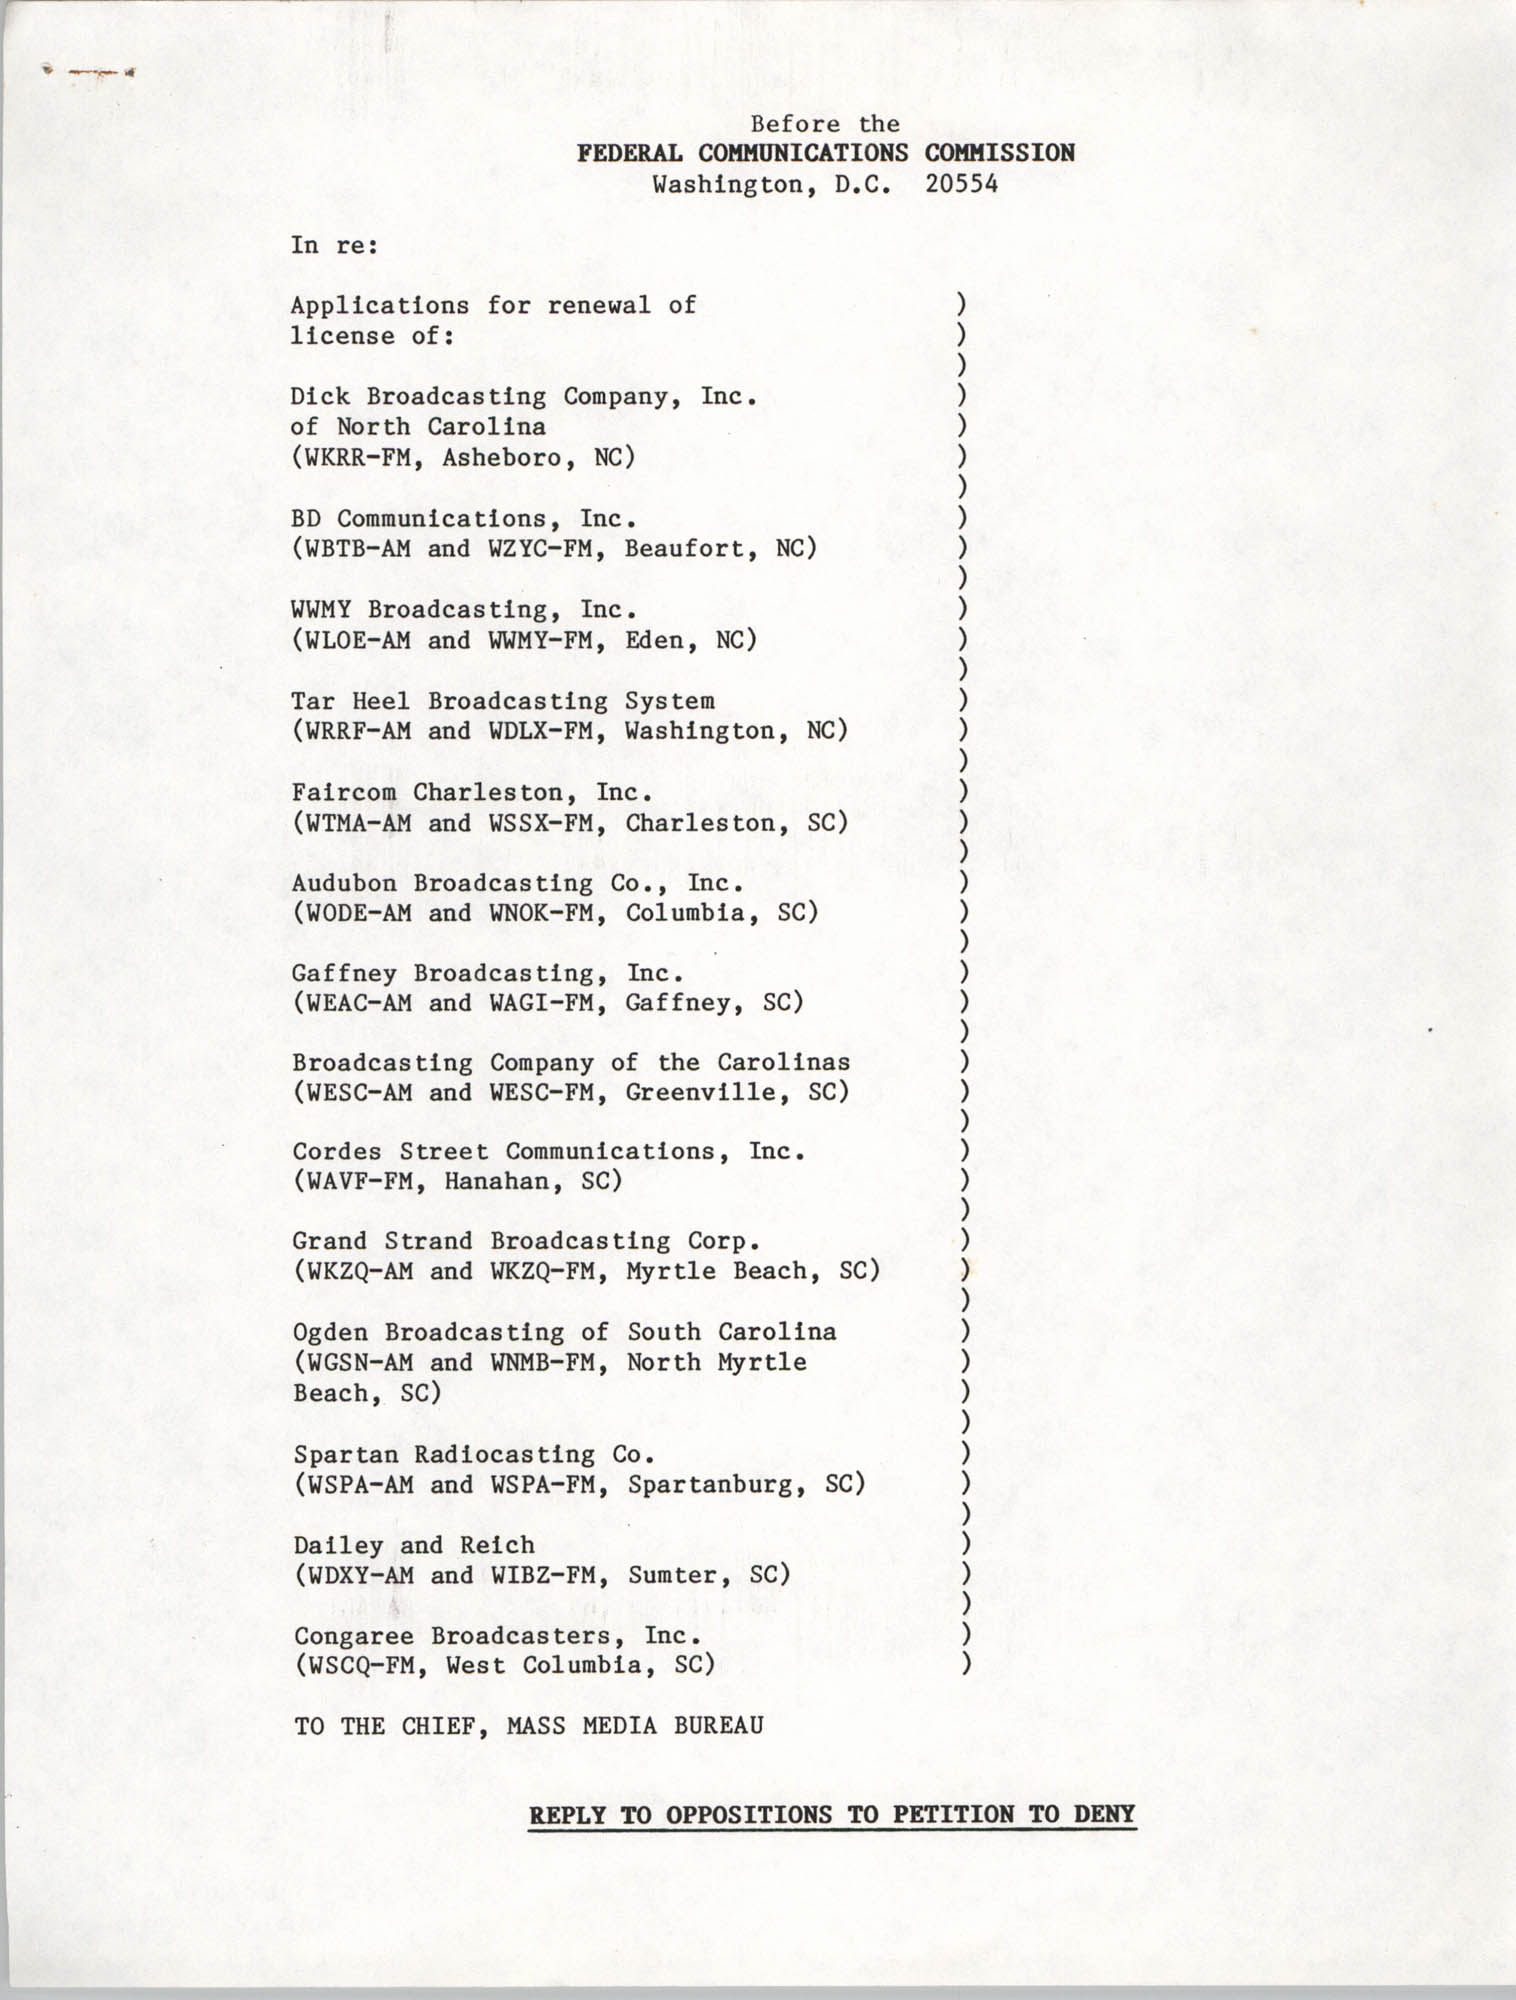 Federal Communications Commission Certificate of Service, Page 2